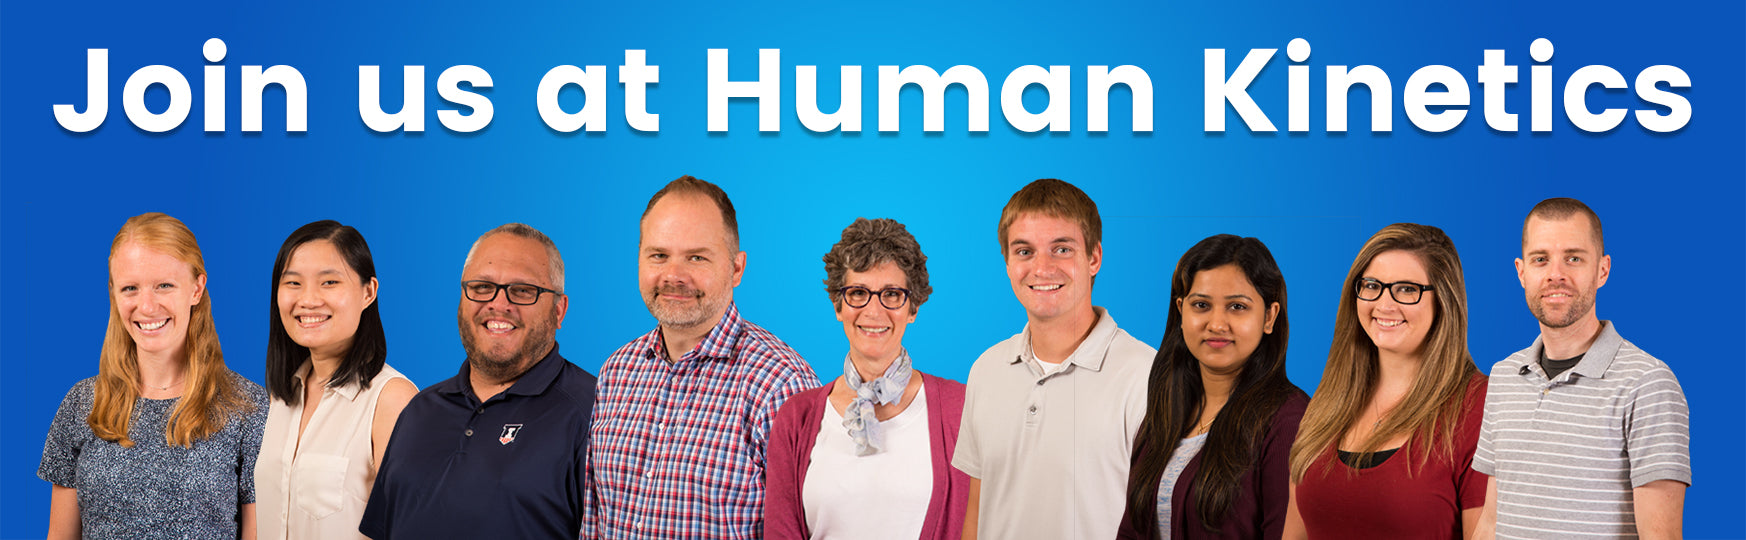 Join us at Human Kinetics